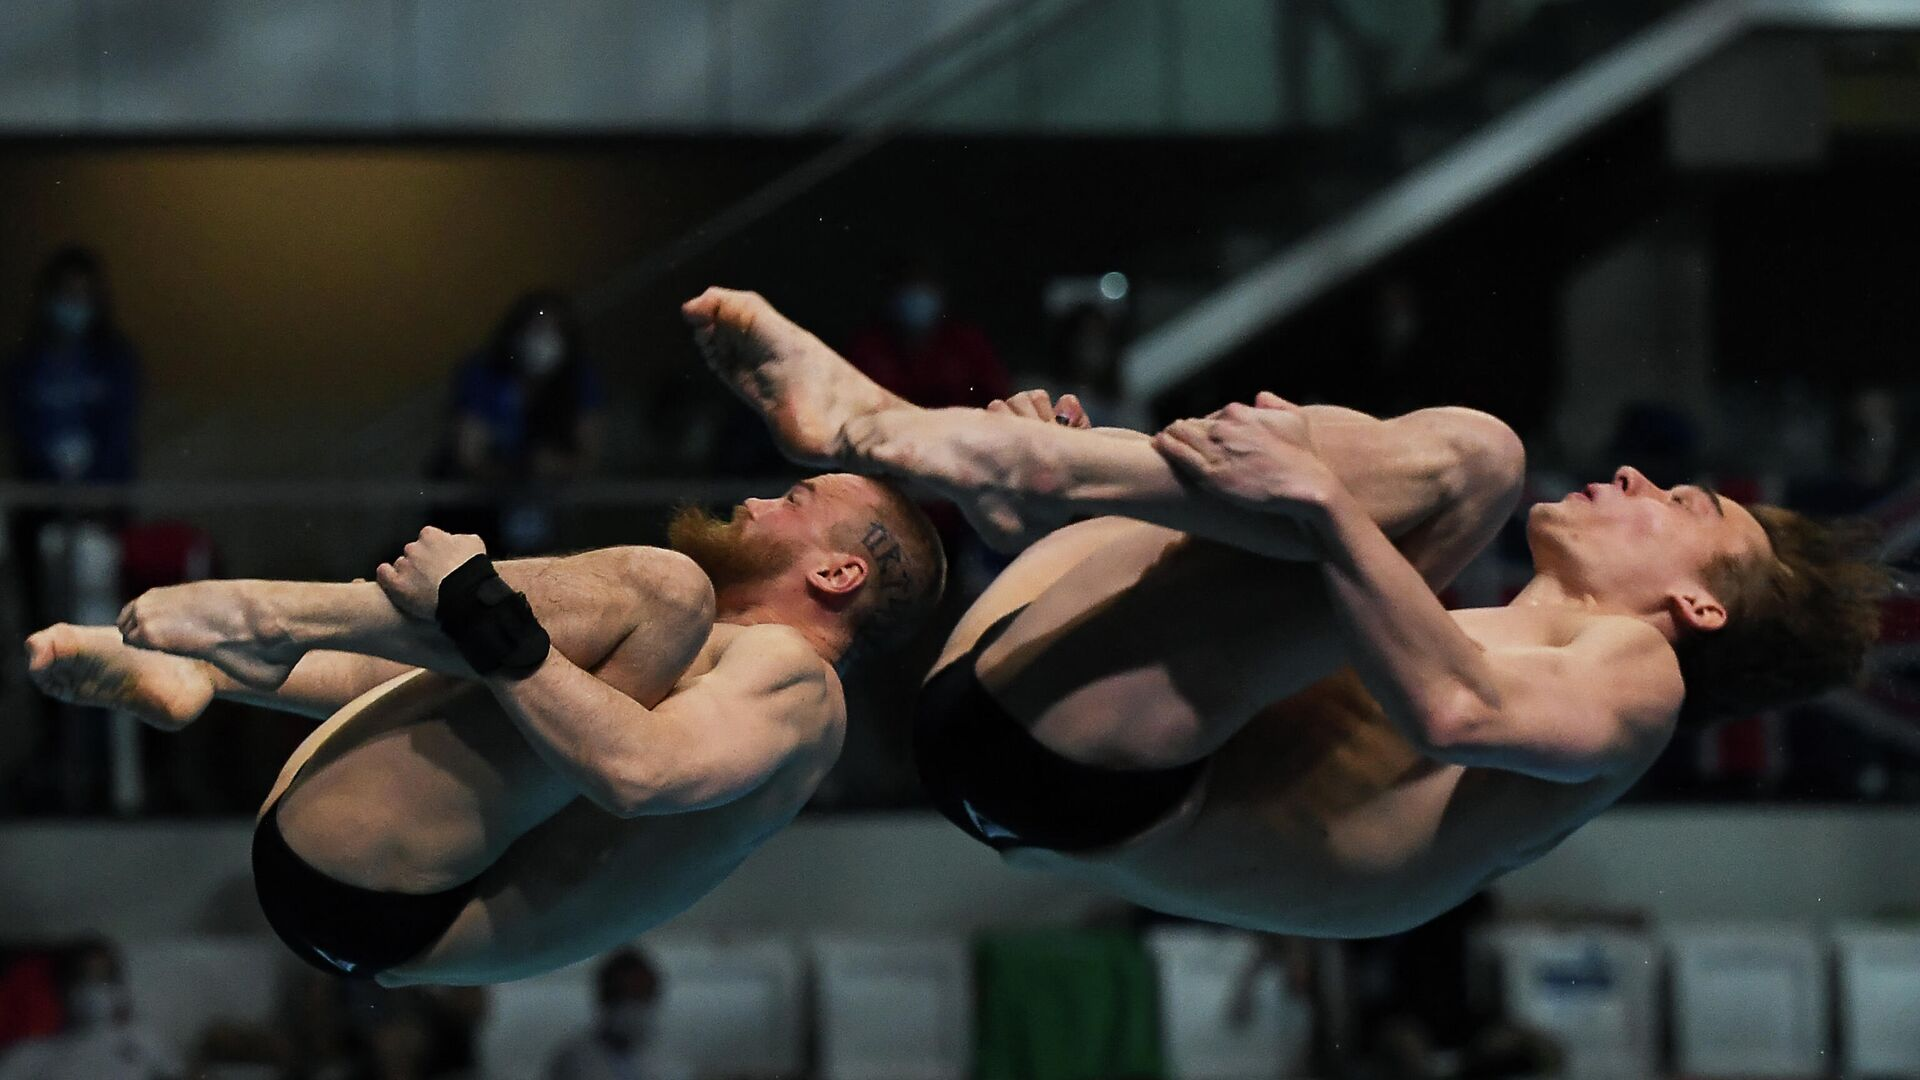 Russia's Nikita Shleikher (R) and Russia's Evgenii Kuznetsov compete in the Men's Synchronised 3m Springboard Diving event during the LEN European Aquatics Championships at the Duna Arena in Budapest on May 13, 2021. (Photo by Attila KISBENEDEK / AFP) - РИА Новости, 1920, 13.05.2021